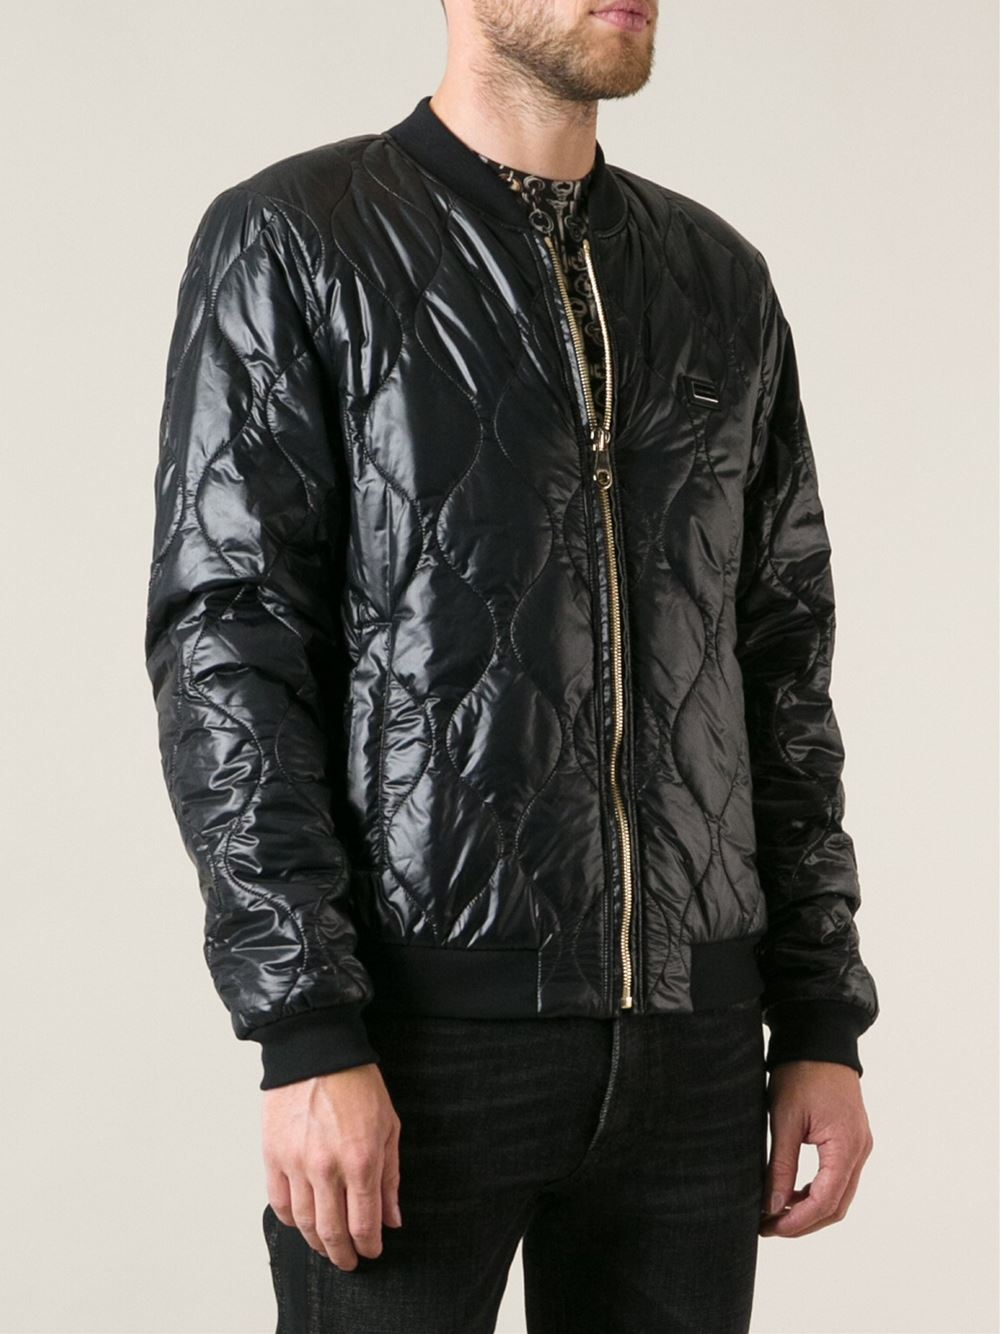 Dolce & Gabbana Cotton Quilted Bomber Jacket in Black for Men